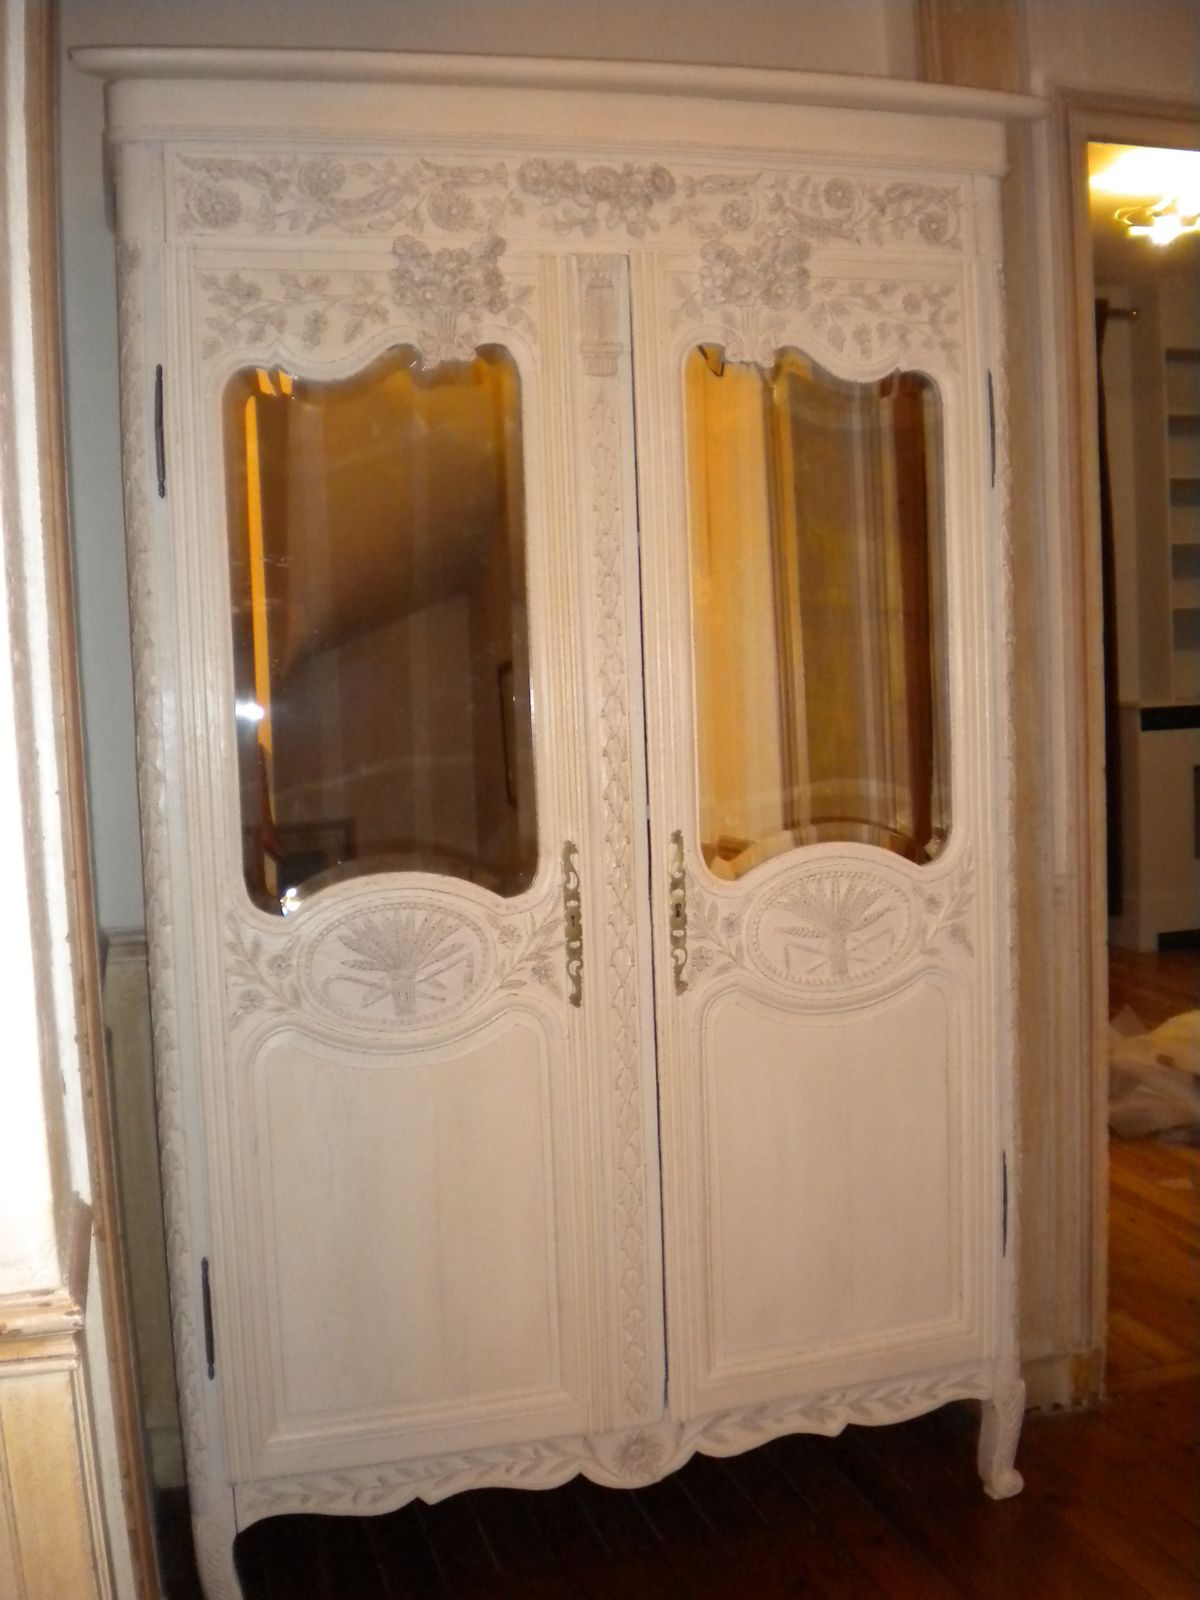 metamorphose d une armoire ancienne ambiance patine. Black Bedroom Furniture Sets. Home Design Ideas